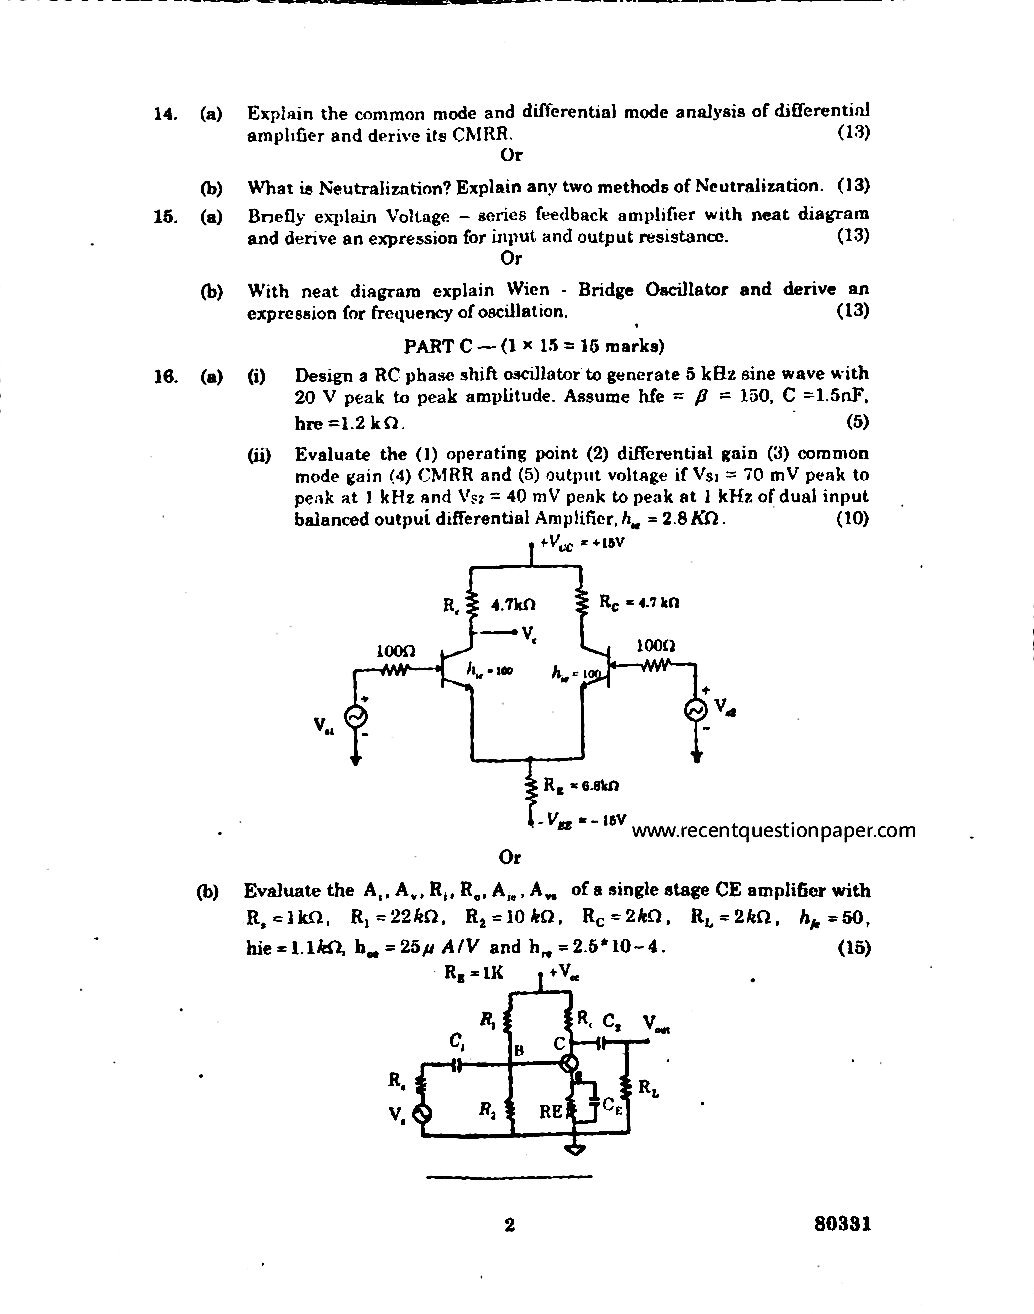 electronic-devices-and-circuits-question-paper1 - Recent Question Paper